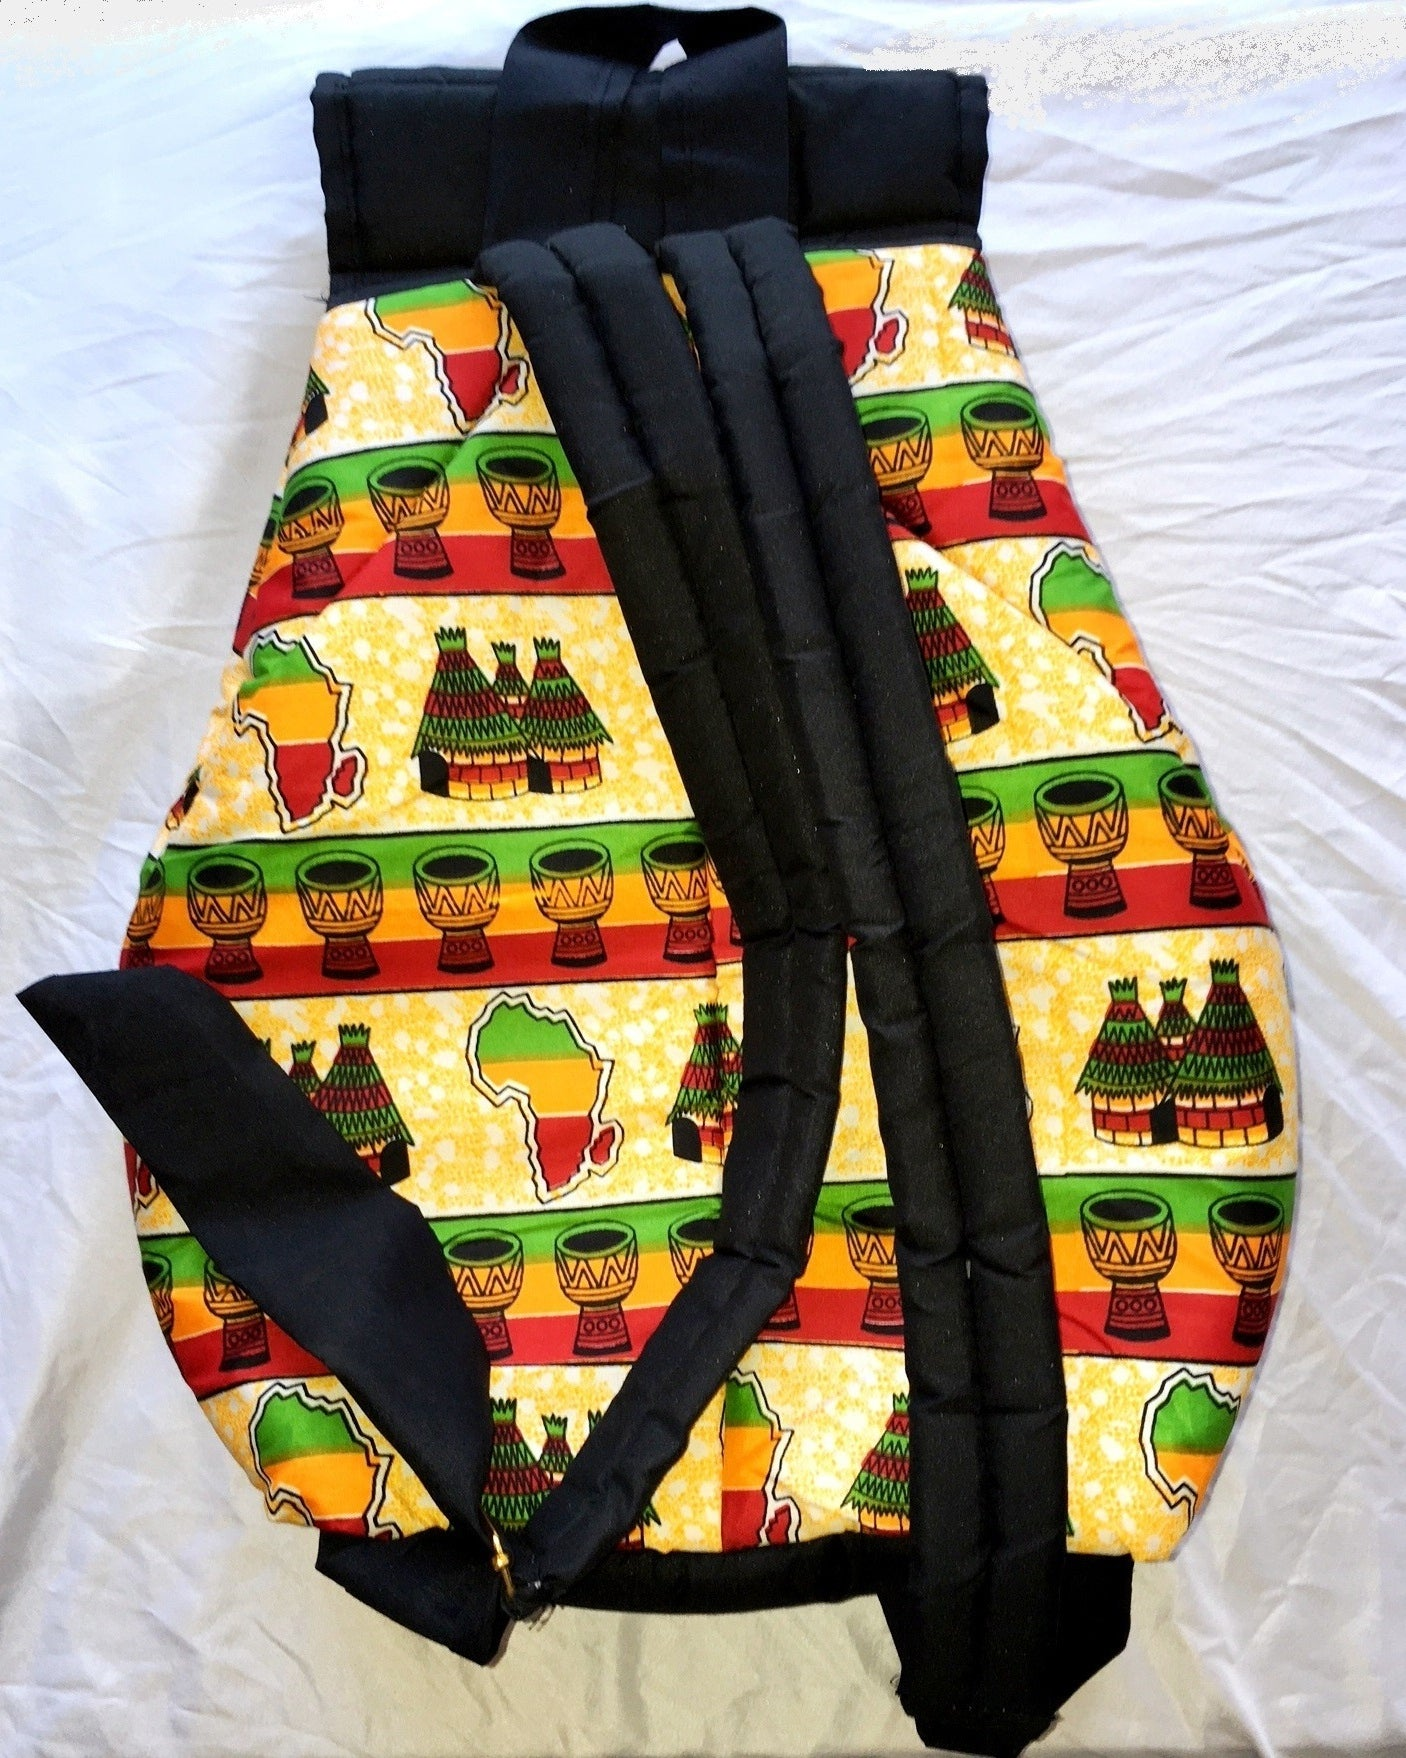 Burkina Bag Handmade African Village Design Insulated Daybag Backpack w/ Straps - Trekking Hiking Walking, backpack 2